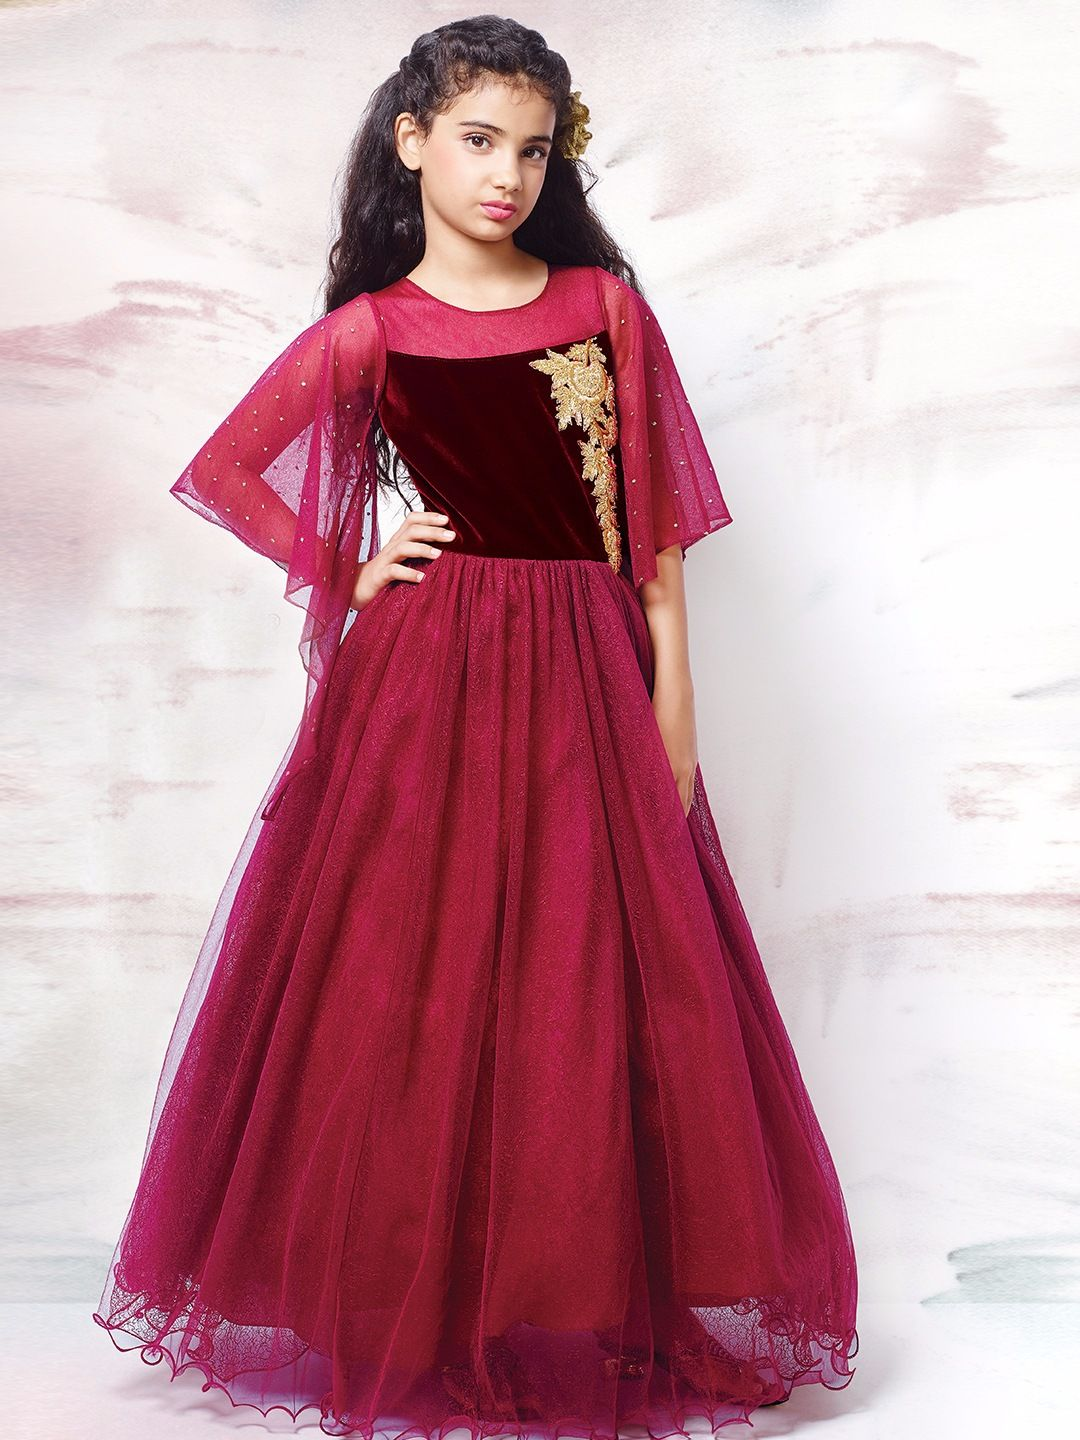 e49eb346ce5 Shop G3 Exclusive net party wear designer maroon gown online from G3fashion  India. Brand - G3